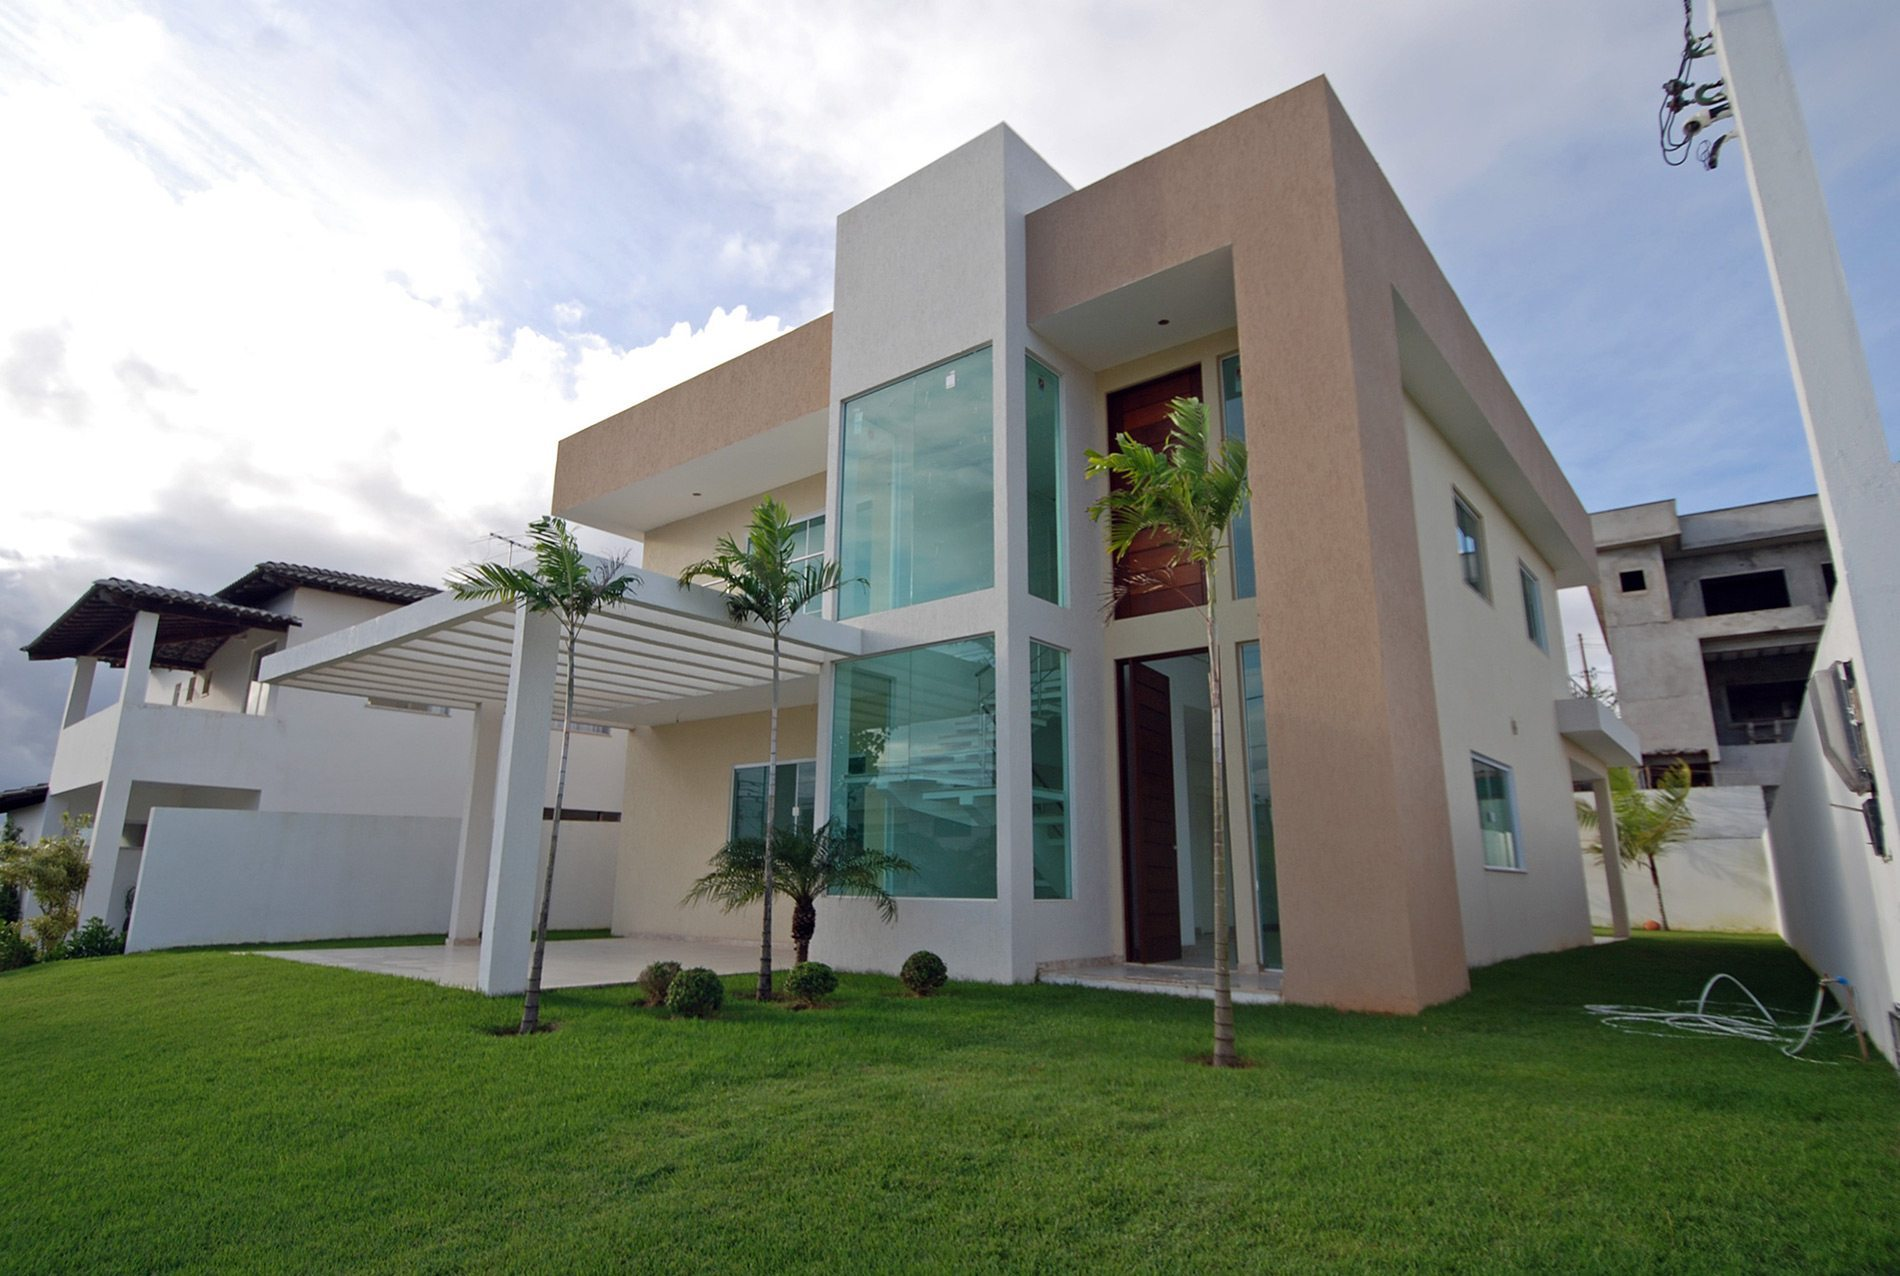 Modern and new home for sales in Alphaville Litoral Norte